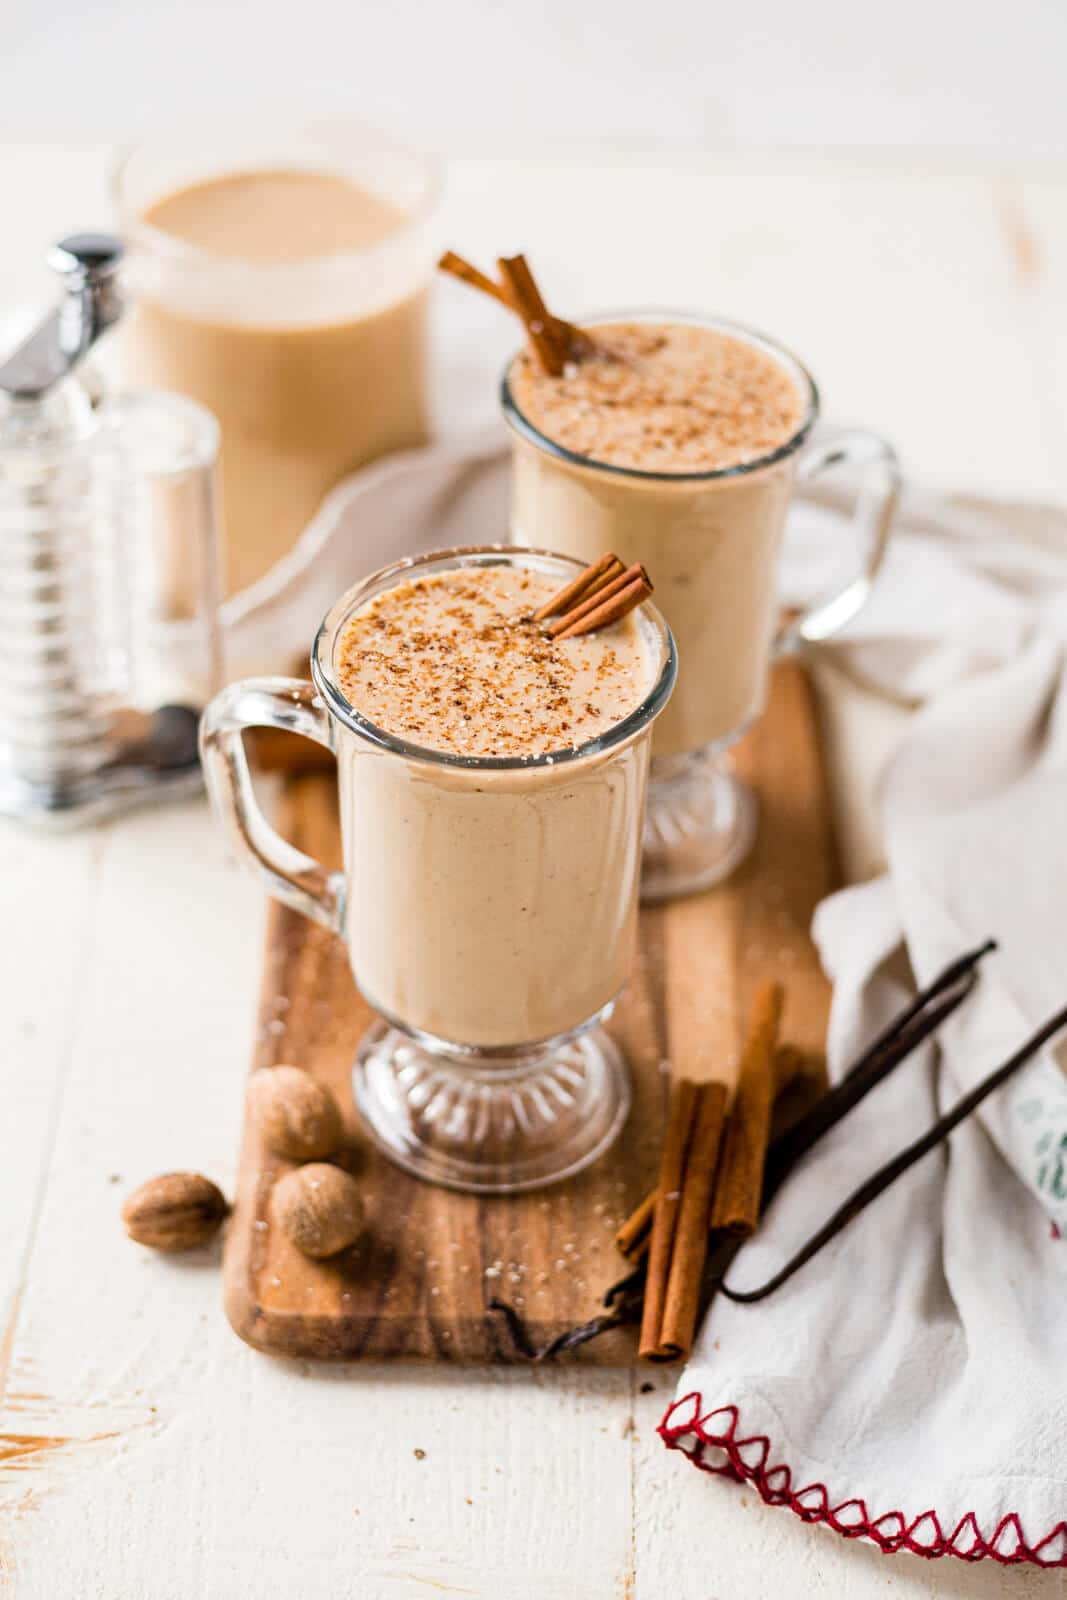 two glasses of dairy free eggnog on a wooden tray with fresh eggnog and cinnamon sticks